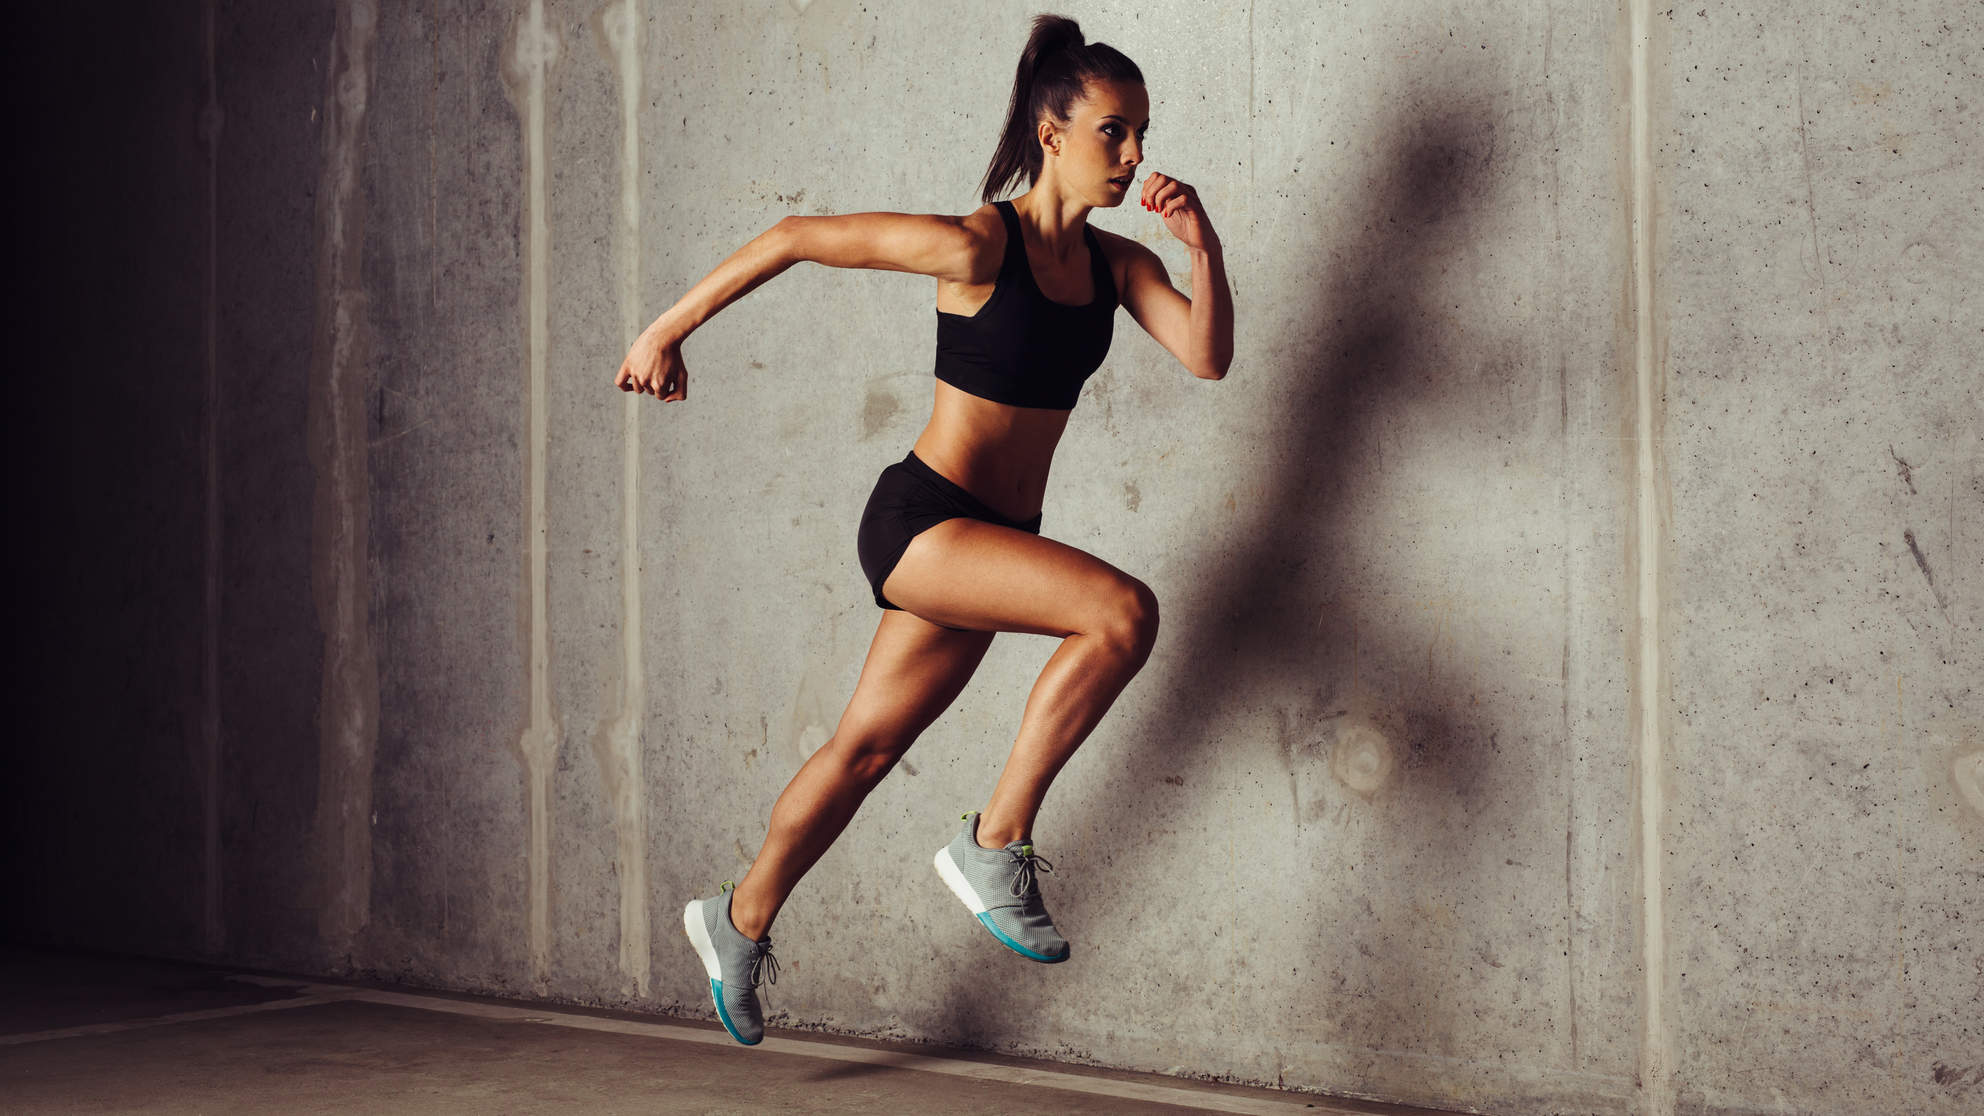 10-Minute Cardio Workout You Can Do at Home